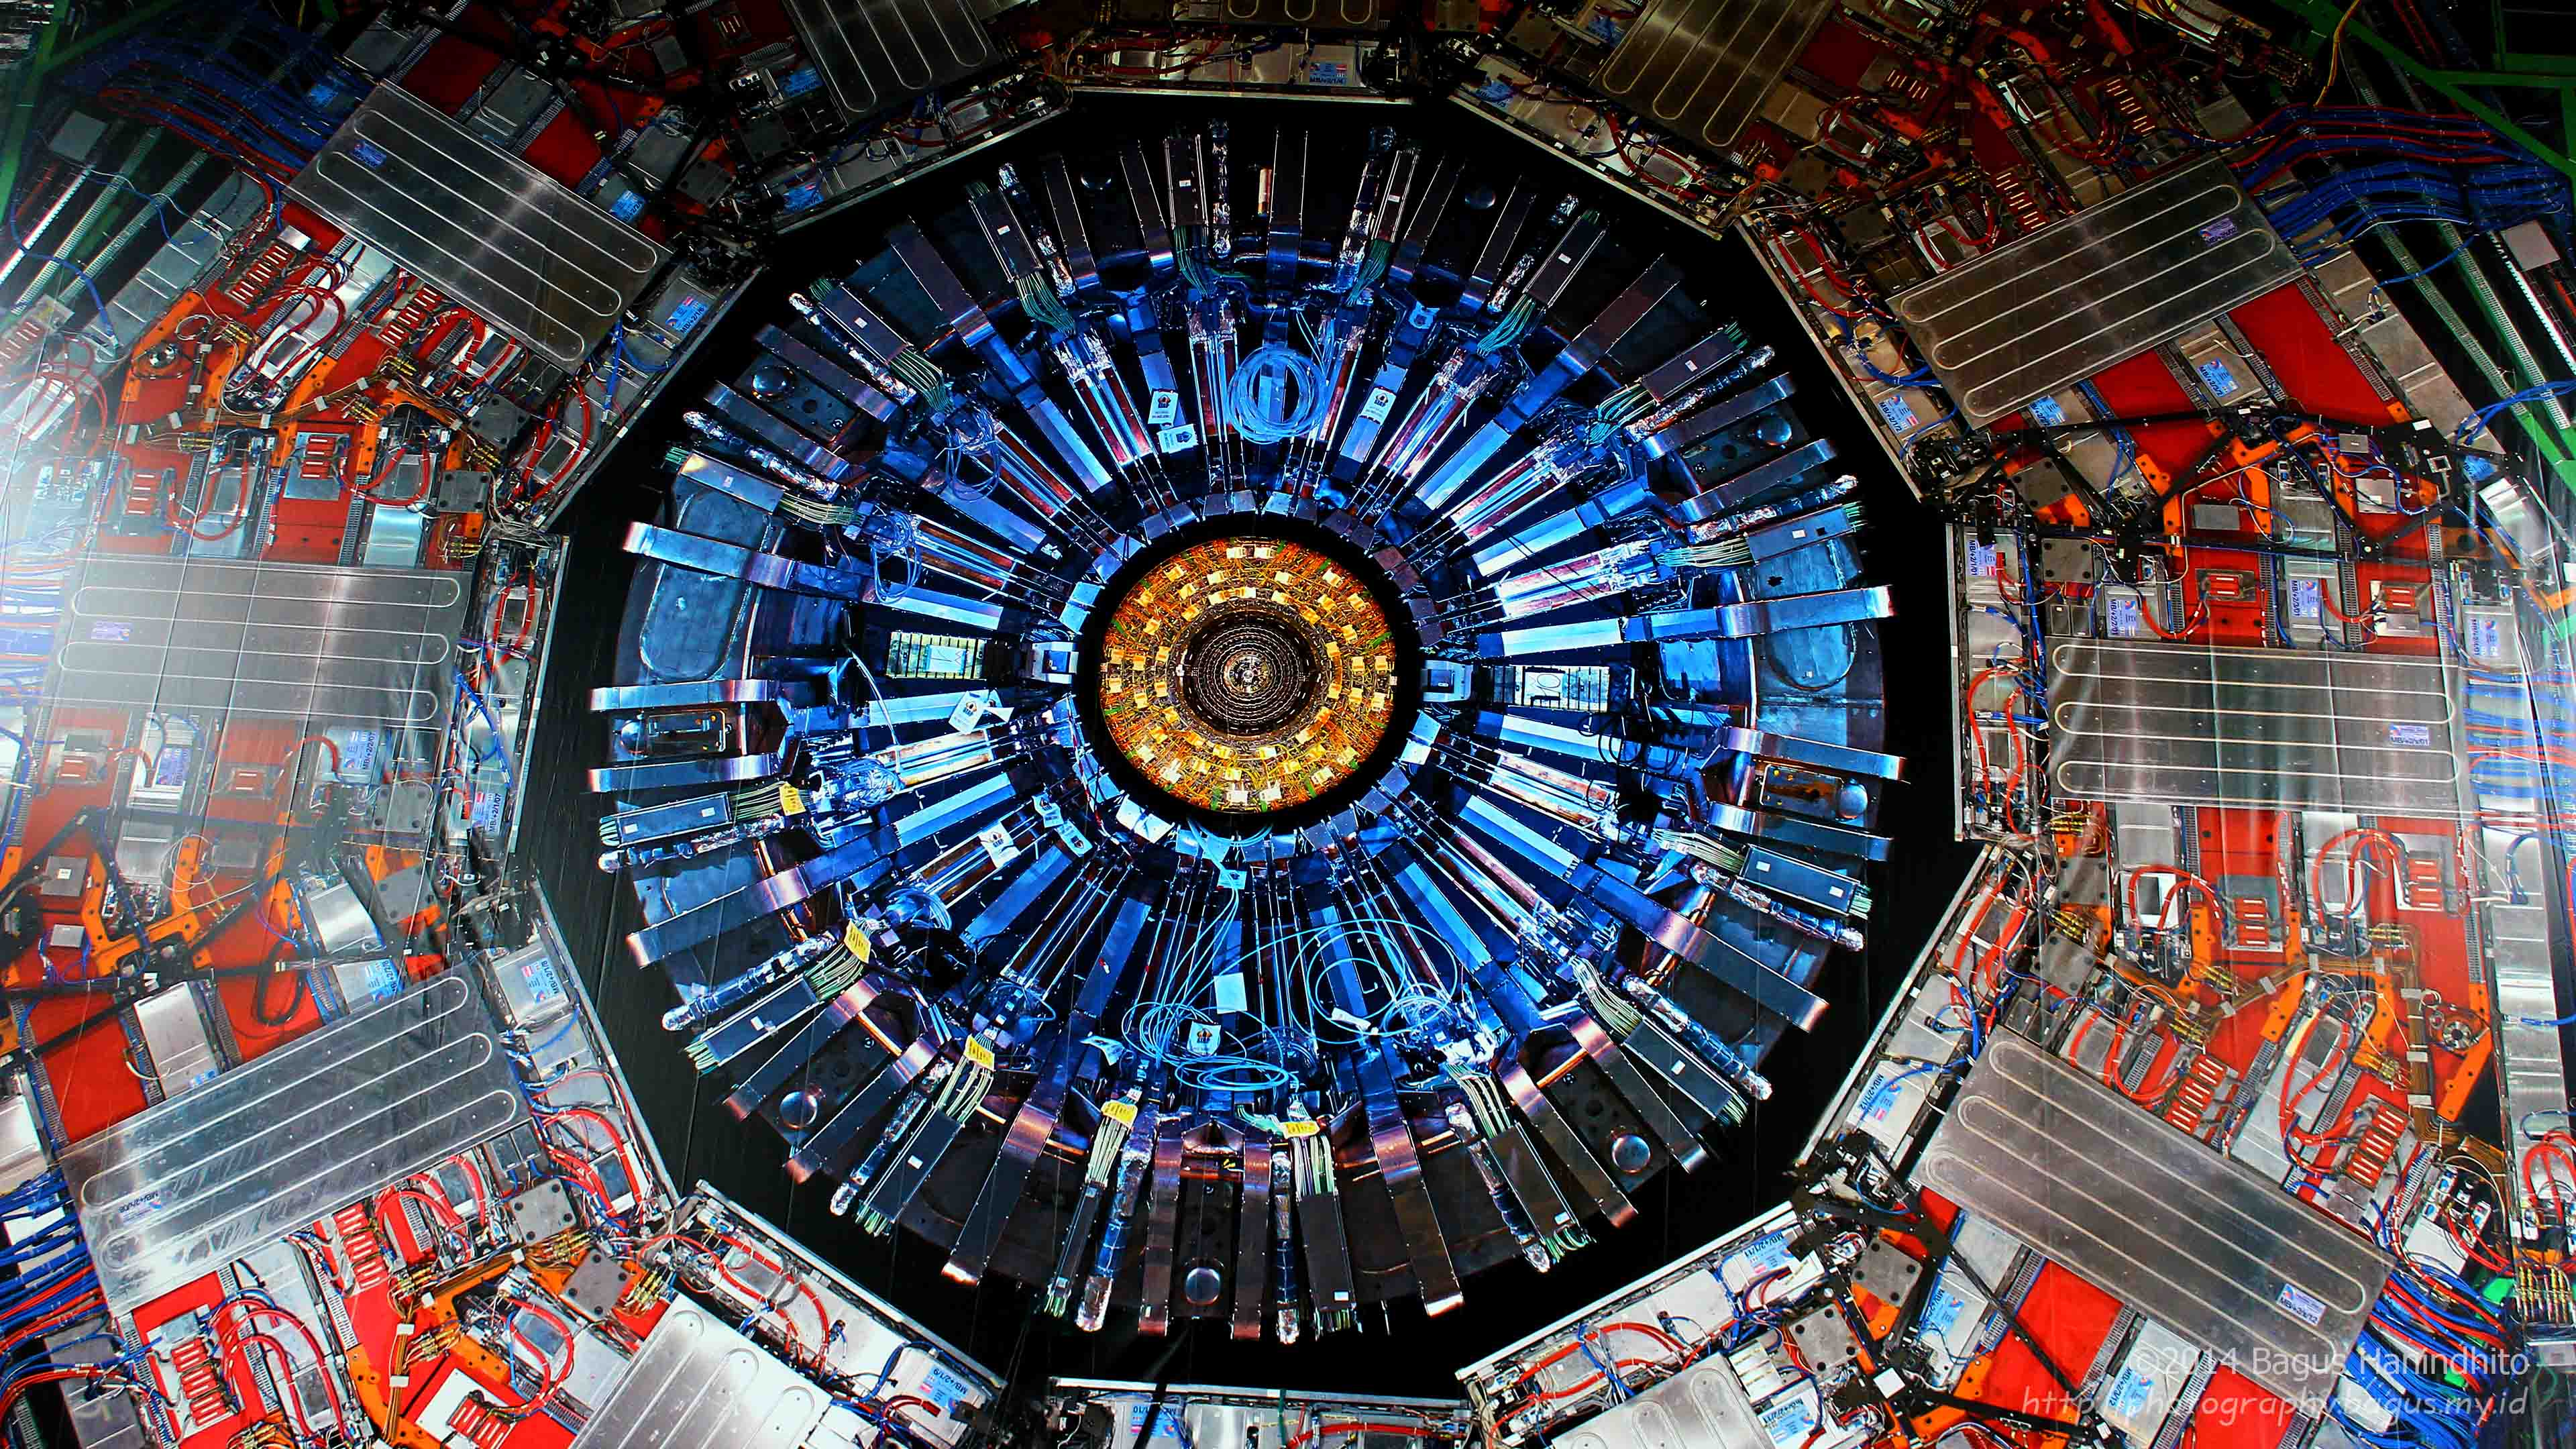 Large Banner in a scale of 1:1 showing the cross-section of CERN's heaviest particle detector, the Compact Muon Solenoid.